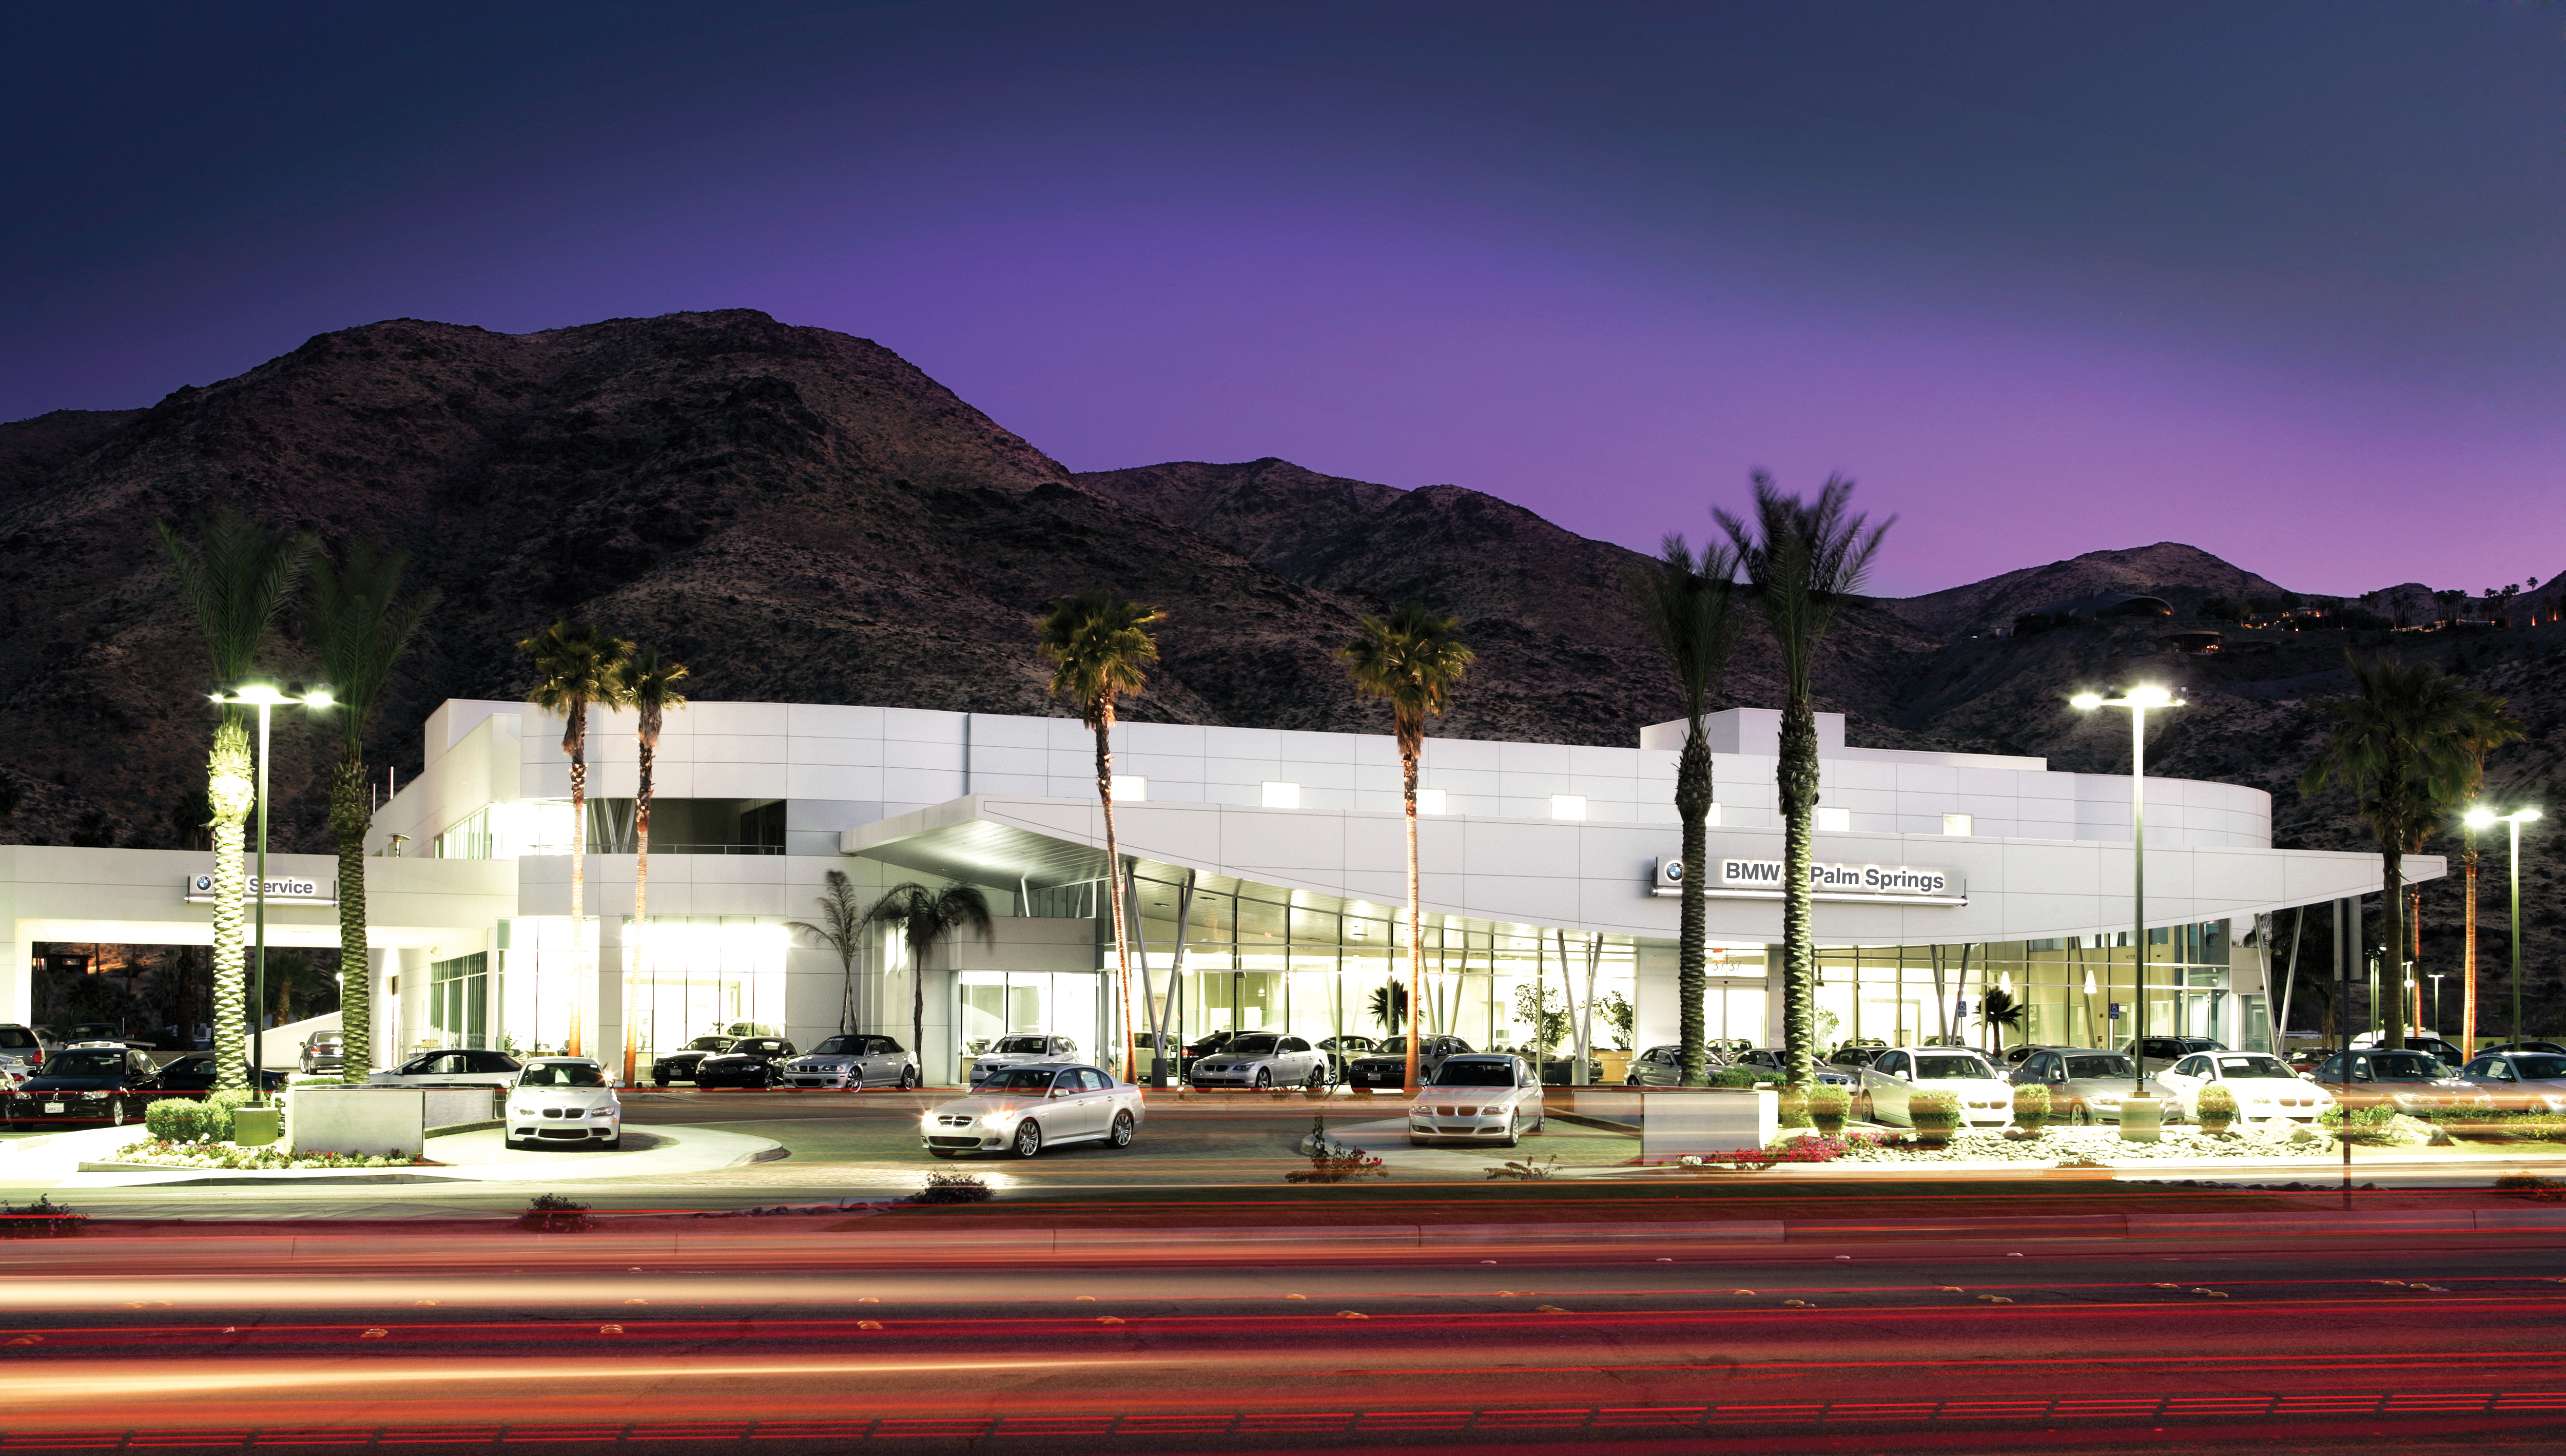 indiGO Auto Group Acquires BMW of Palm Springs  Business Wire